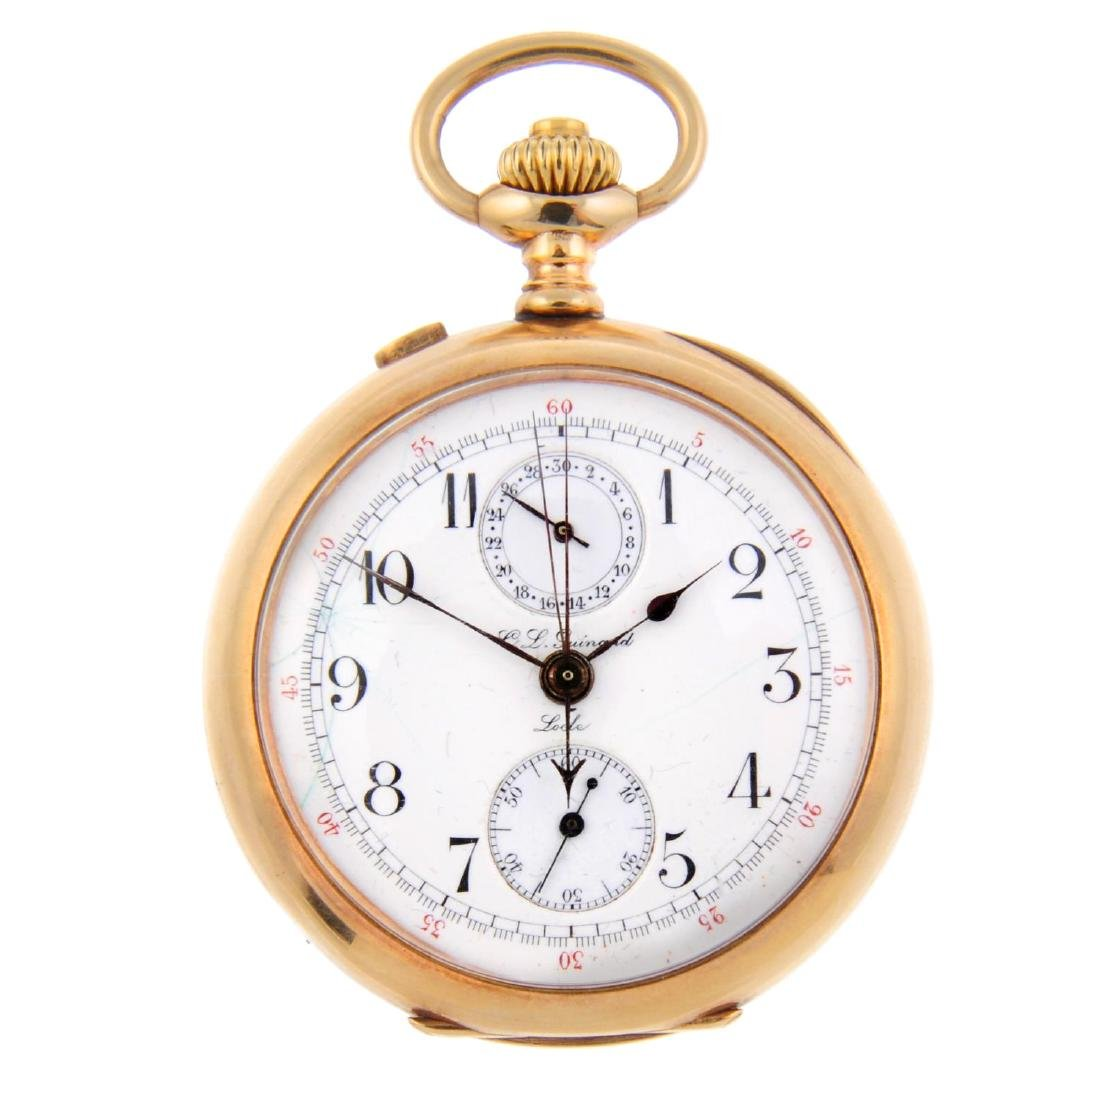 An open face chronograph pocket watch by C.L. Guinand.